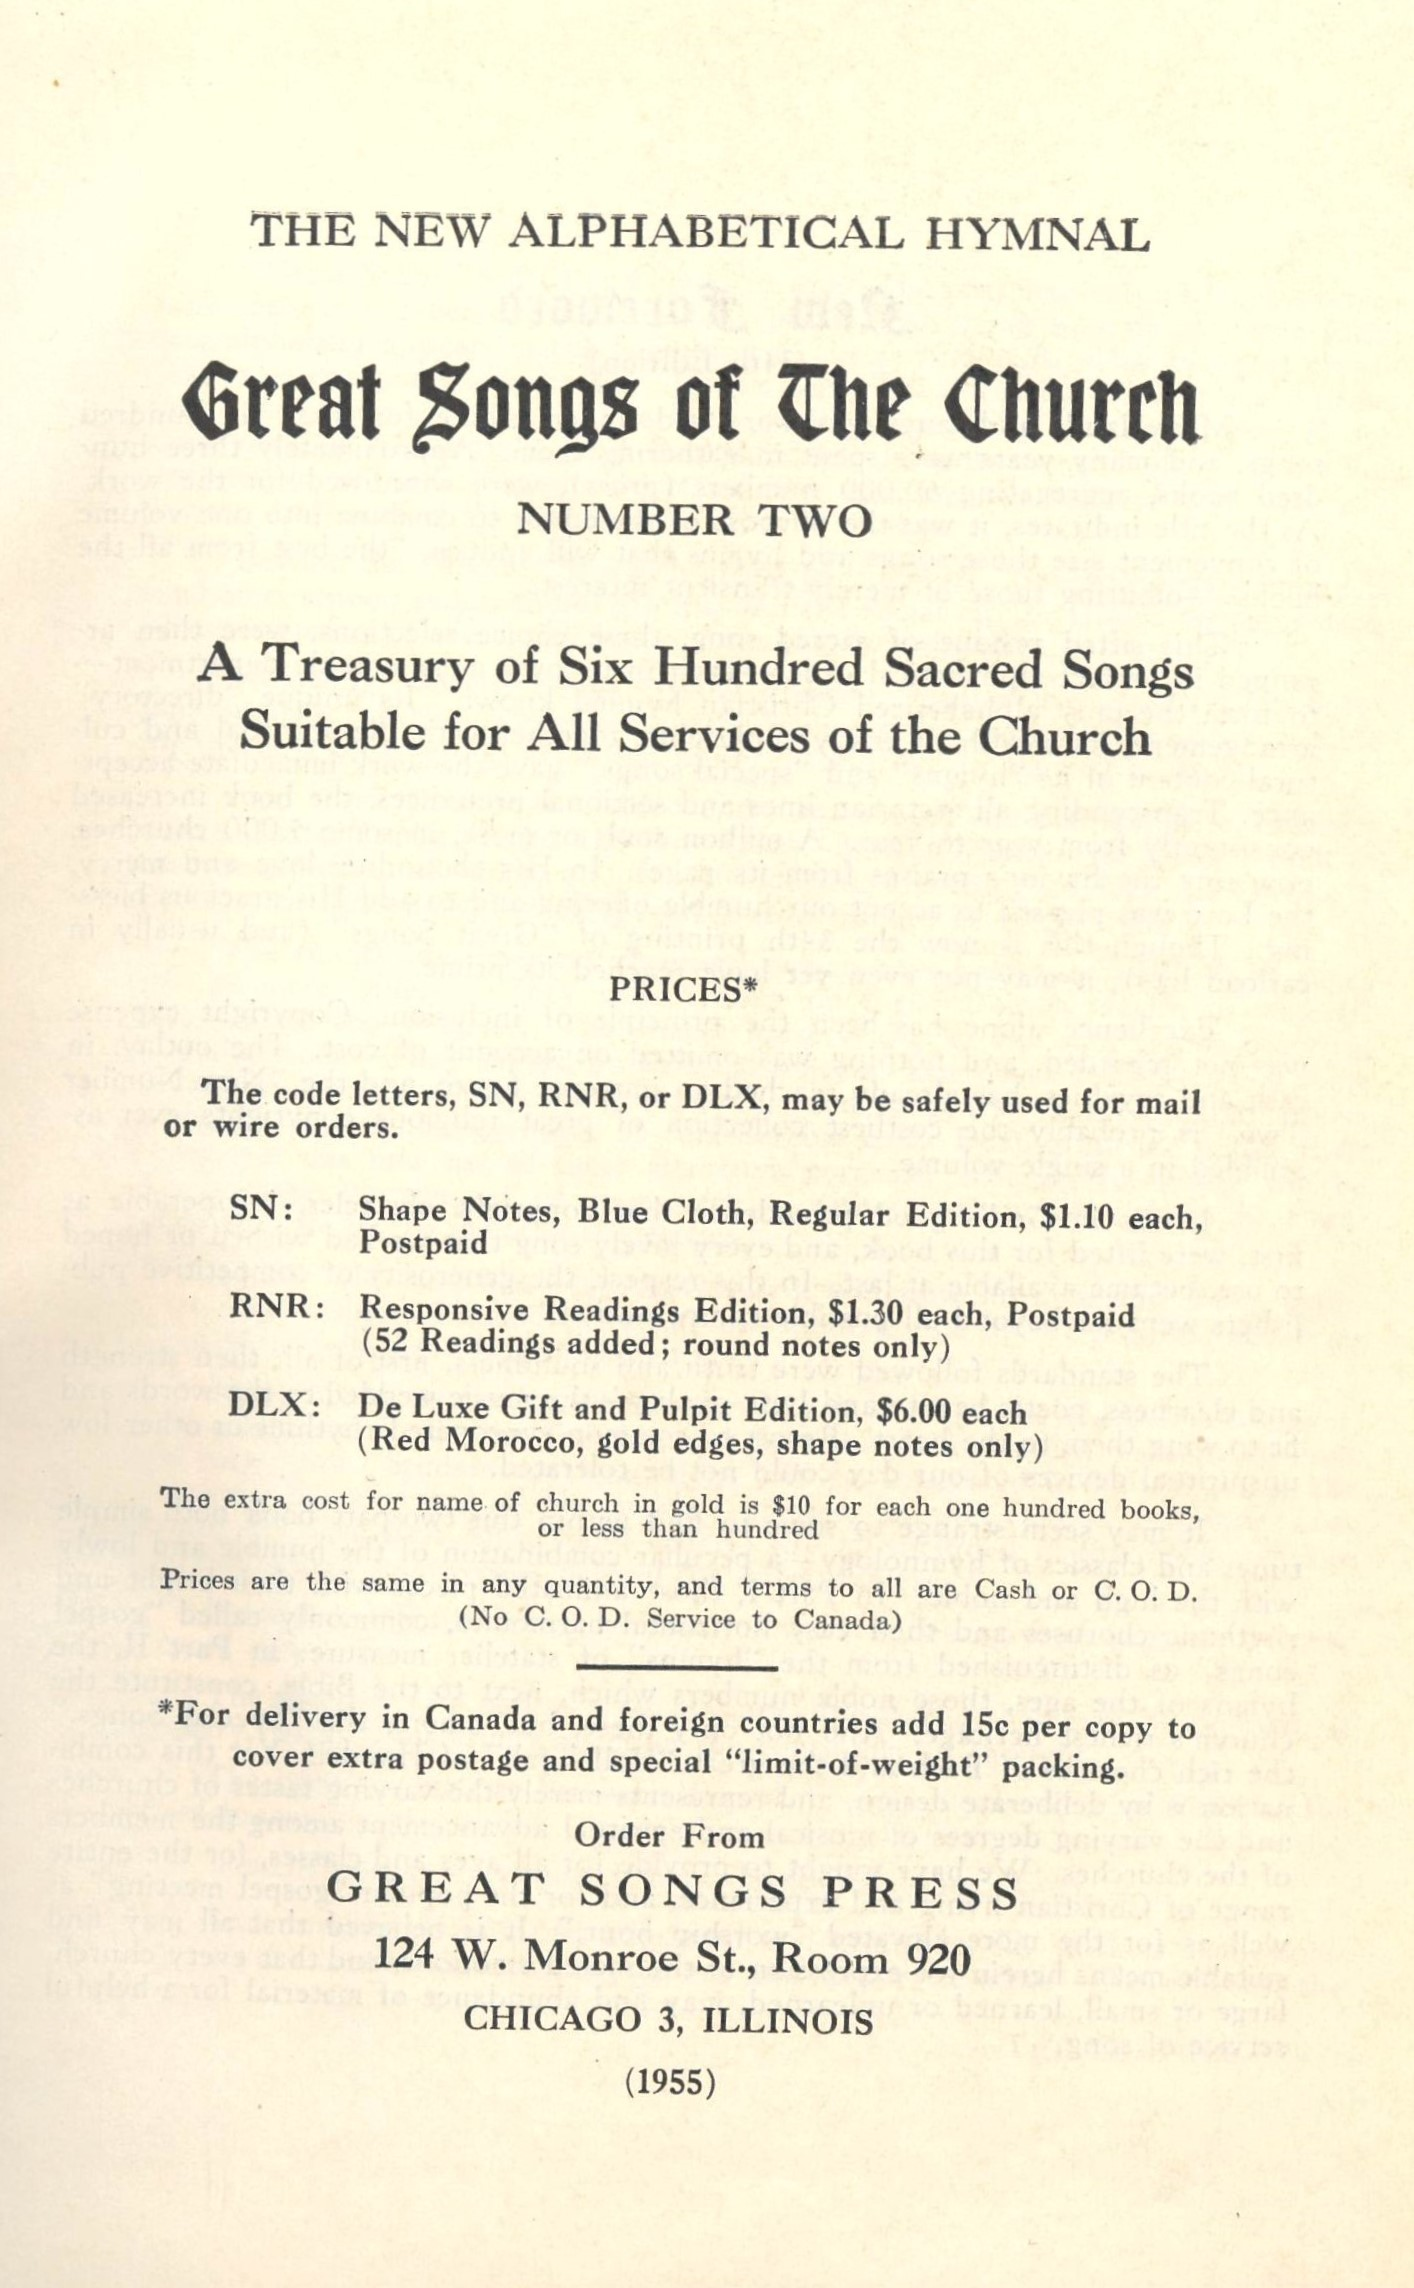 The New Alphabetical Hymnal. Great Songs of the Church Number Two. A Treasury of Six Hundred Sacred Songs Suitable for All Services of the Church. E. L. Jorgenson, Compiler. Great Songs Press: Chicago, 1955. Title page.